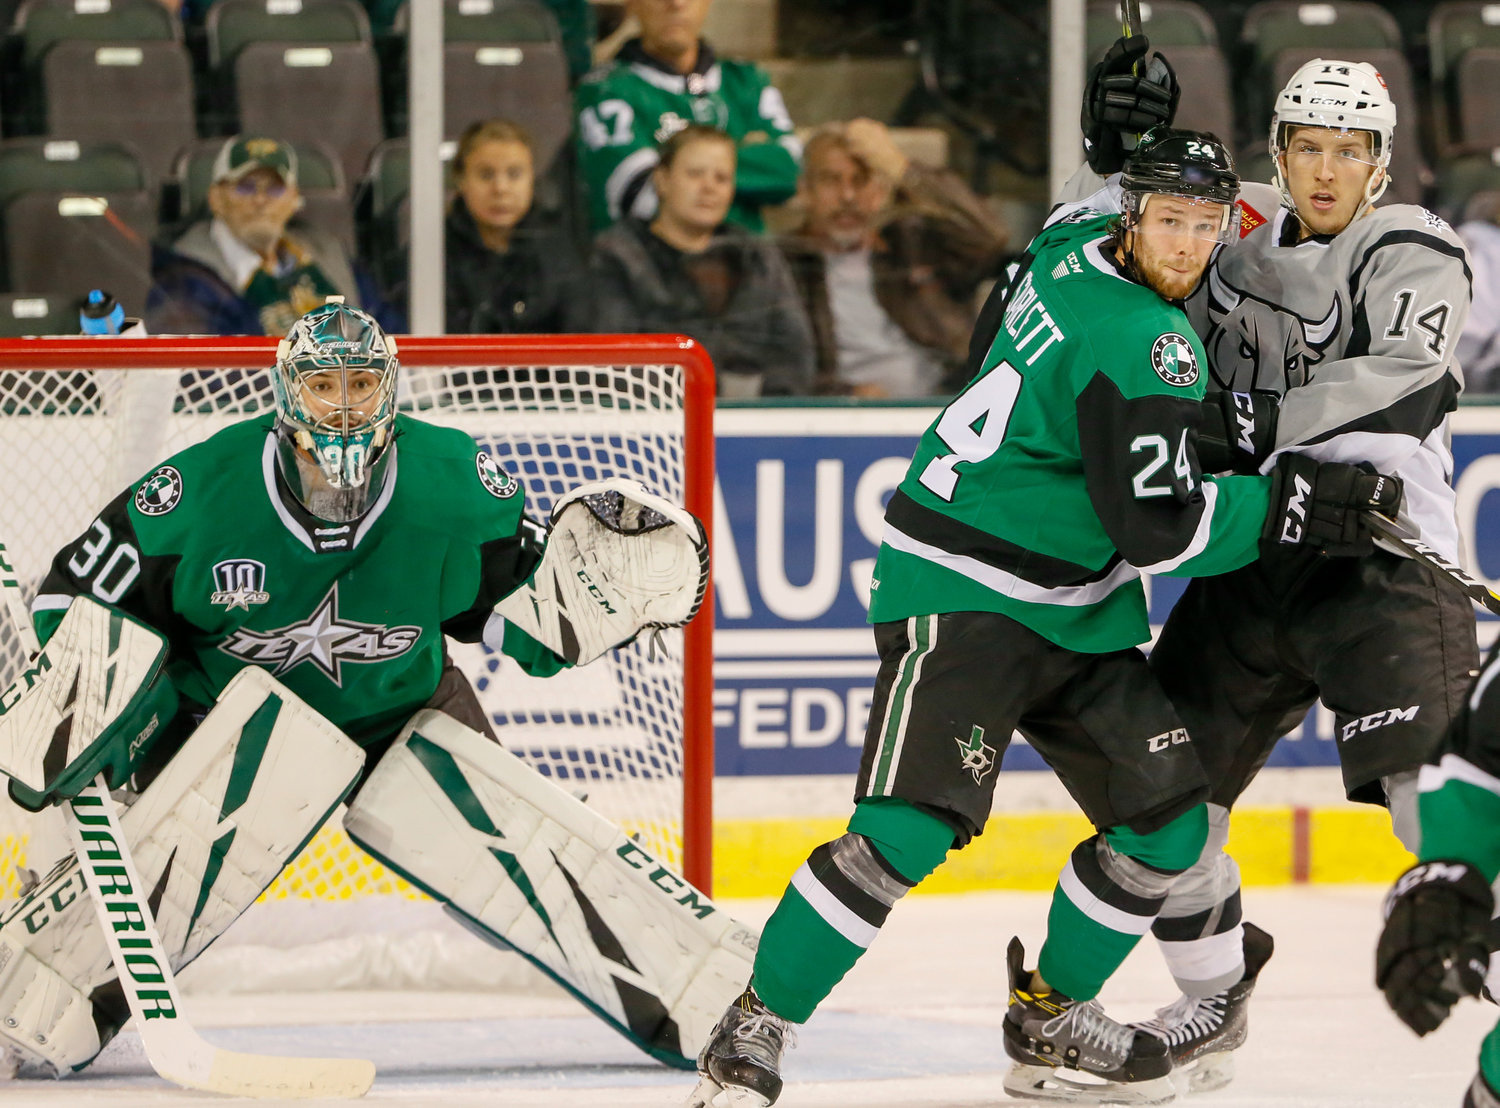 Reece Scarlett, right, returns to Texas this season after helping the Stars reach the Calder Cup finals for the third time in their nine-year history last season. They lost to the Toronto Marlies in seven games.